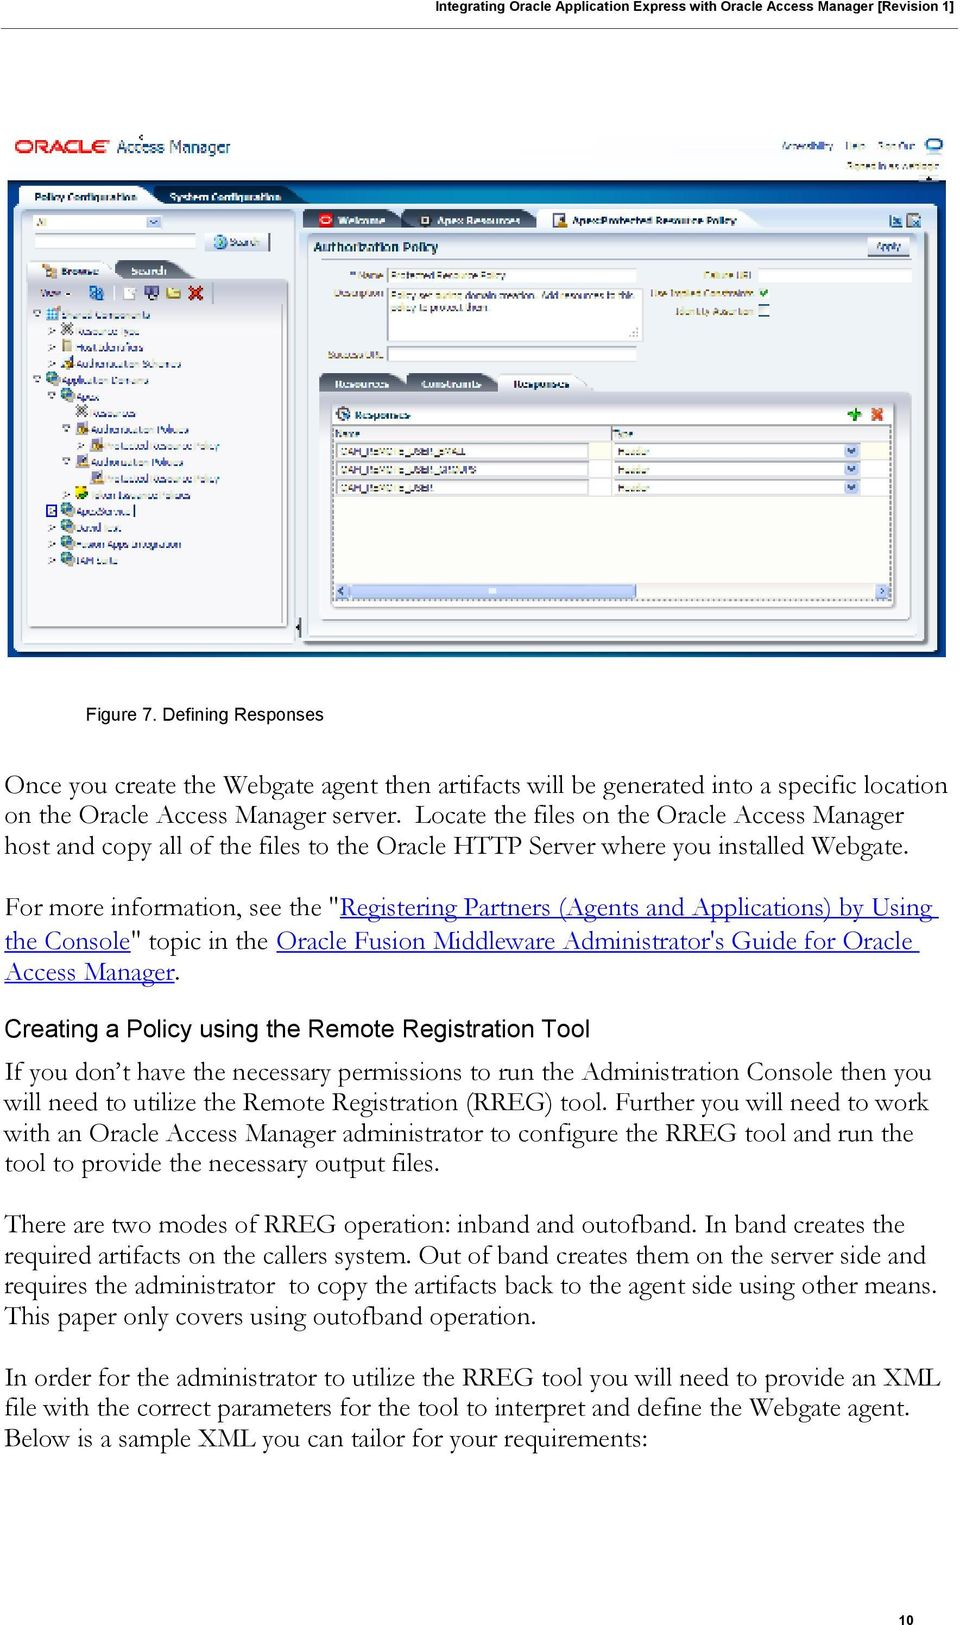 "For more information, see the ""Registering Partners (Agents and Applications) by Using the Console"" topic in the Oracle Fusion Middleware Administrator's Guide for Oracle Access Manager."